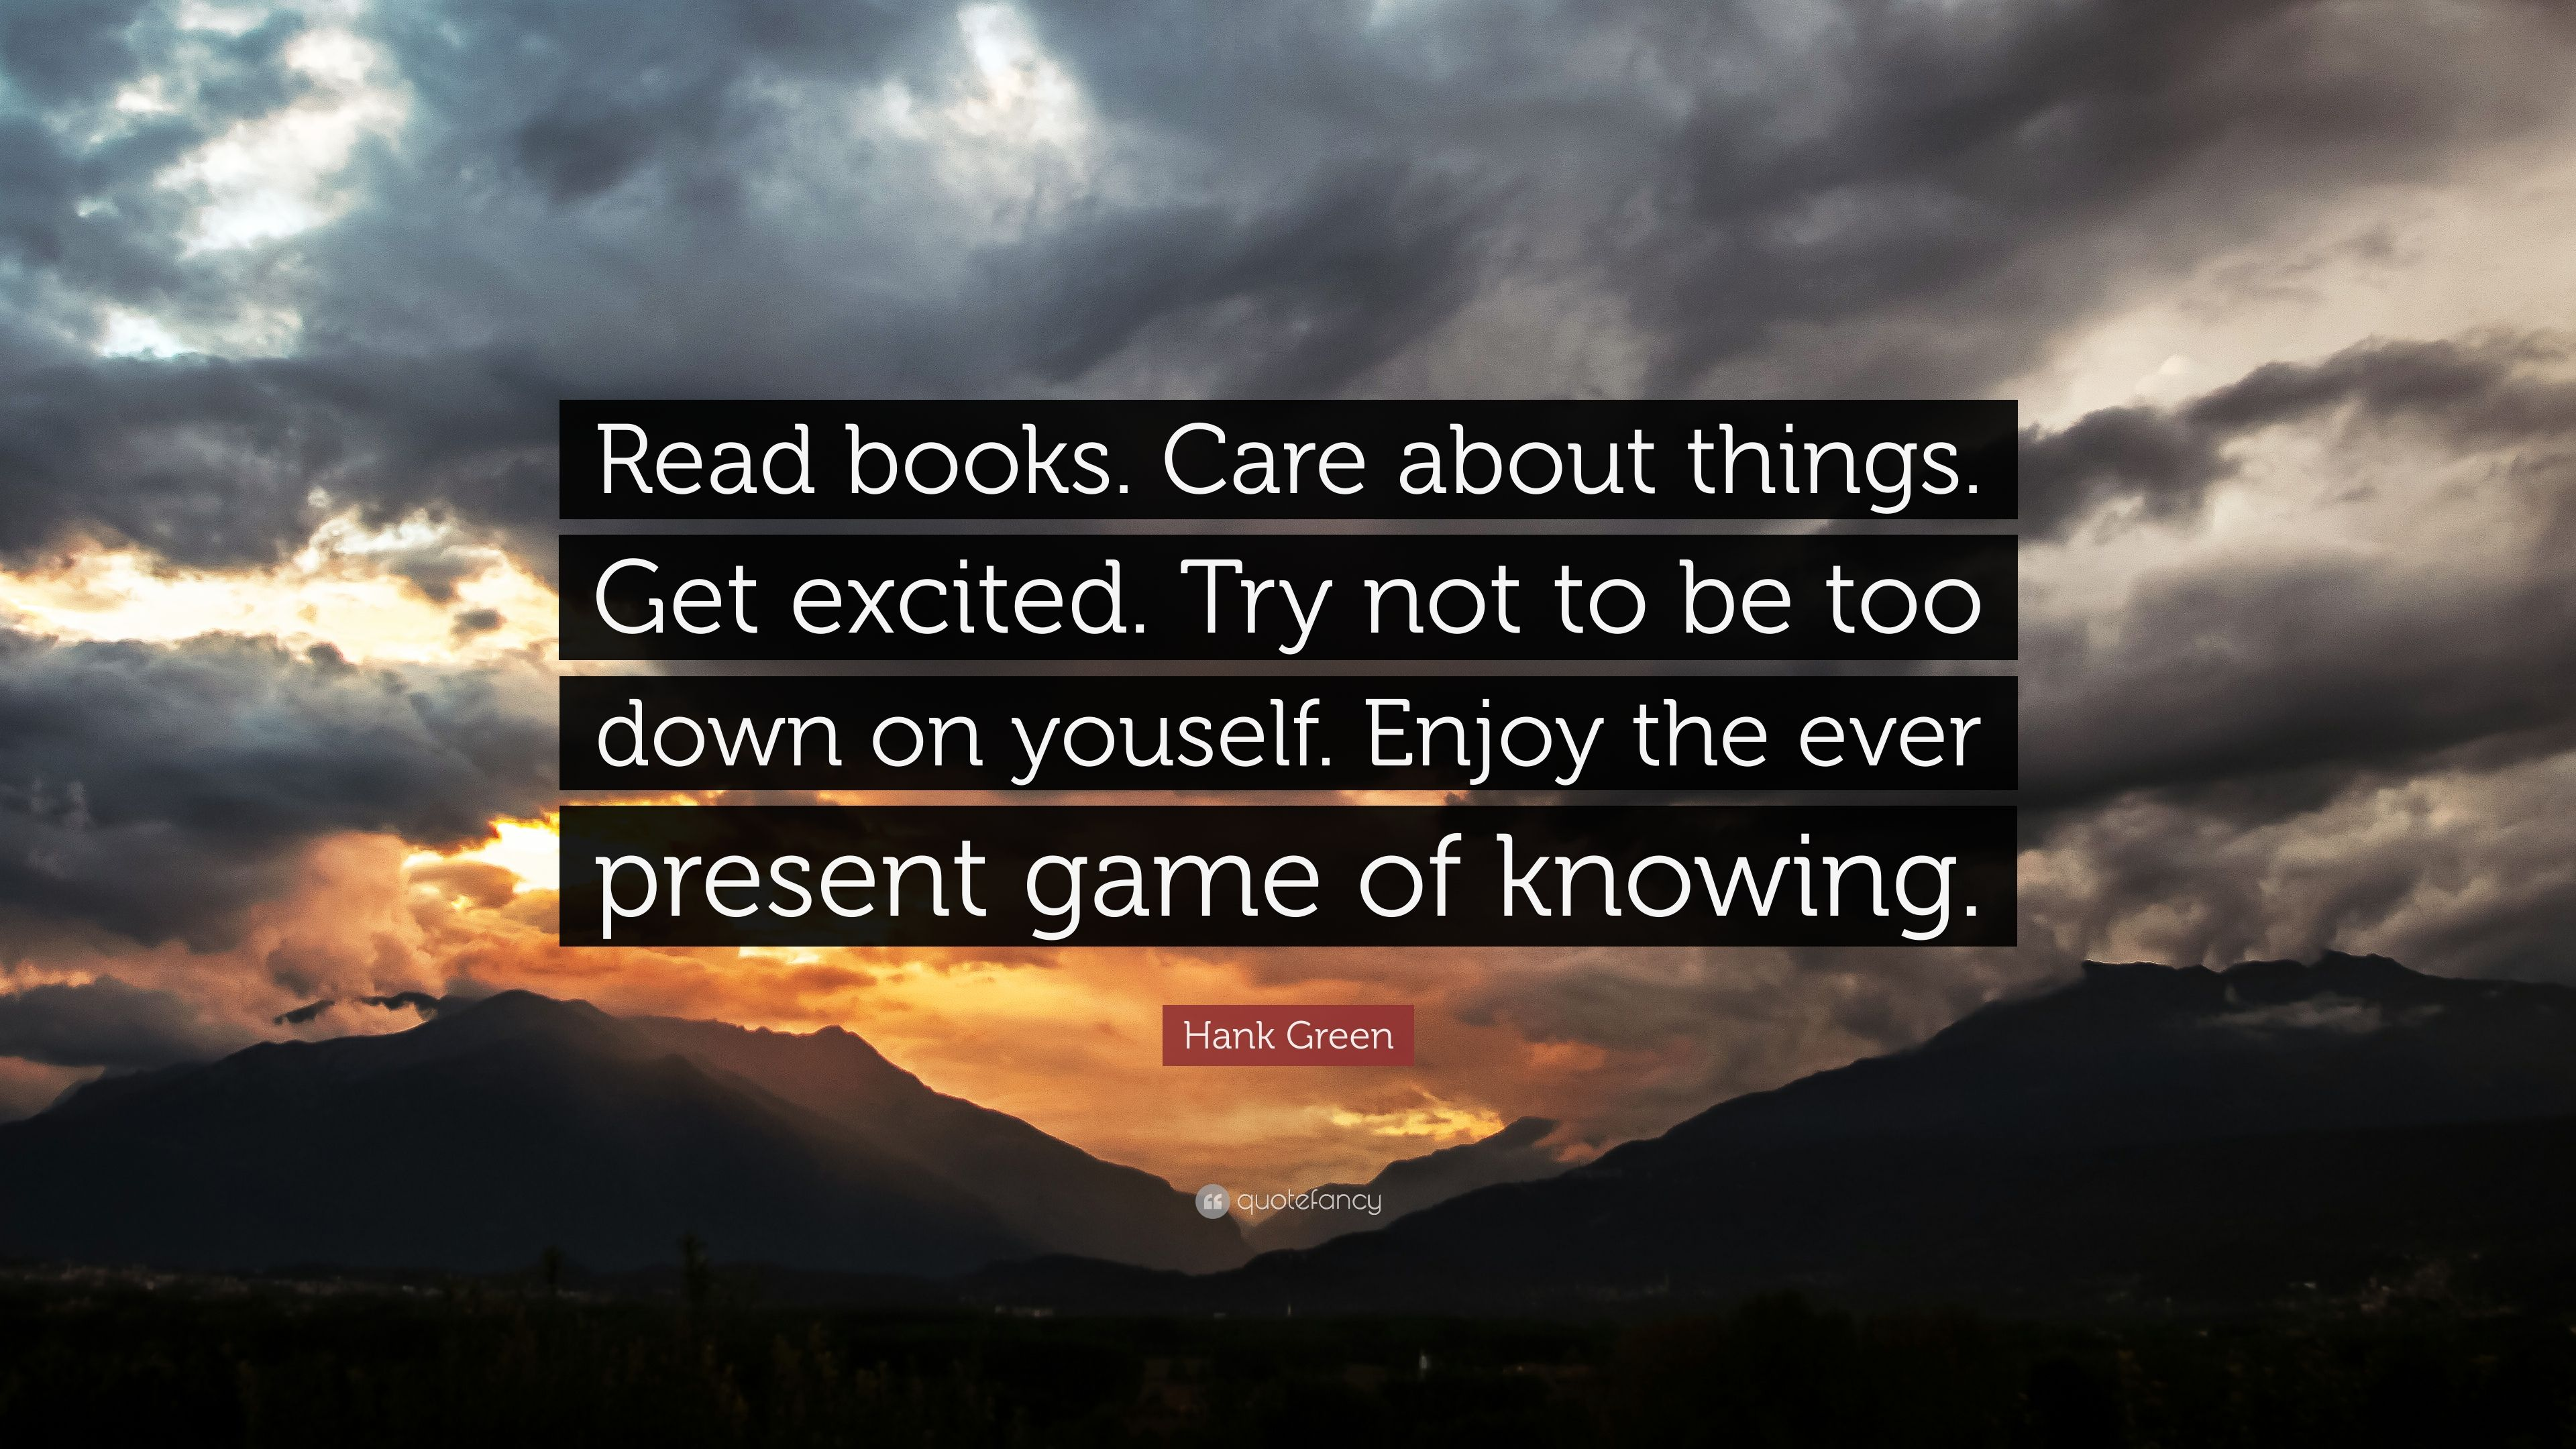 Perfect Hank Green Quote: U201cRead Books. Care About Things. Get Excited. Try